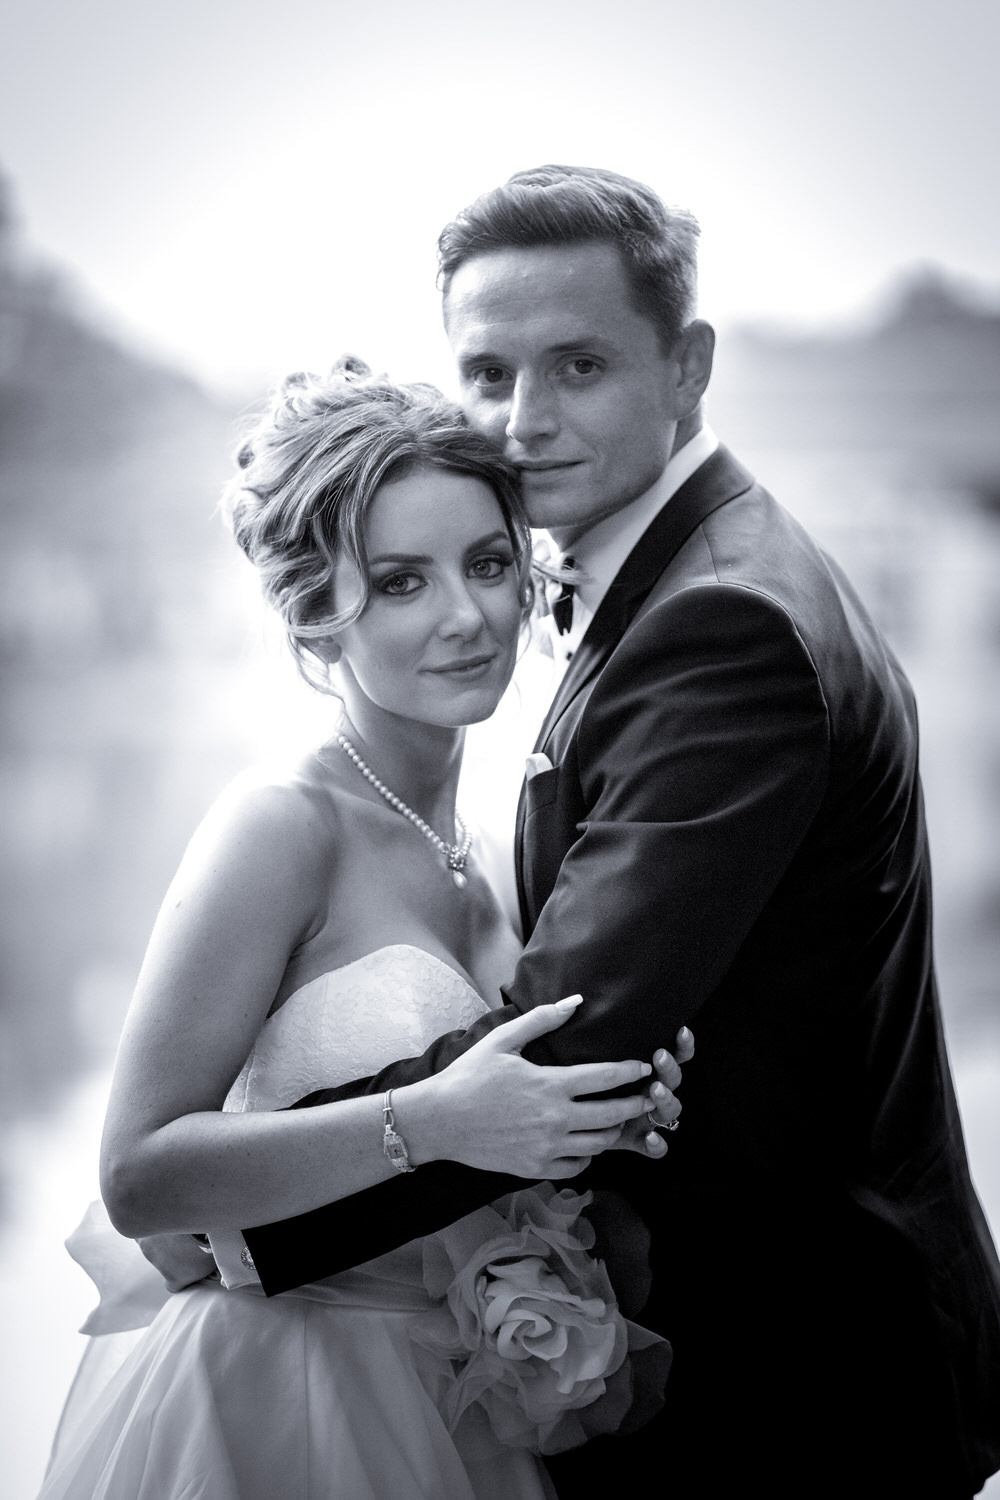 Black and white portrait of the bride and groom